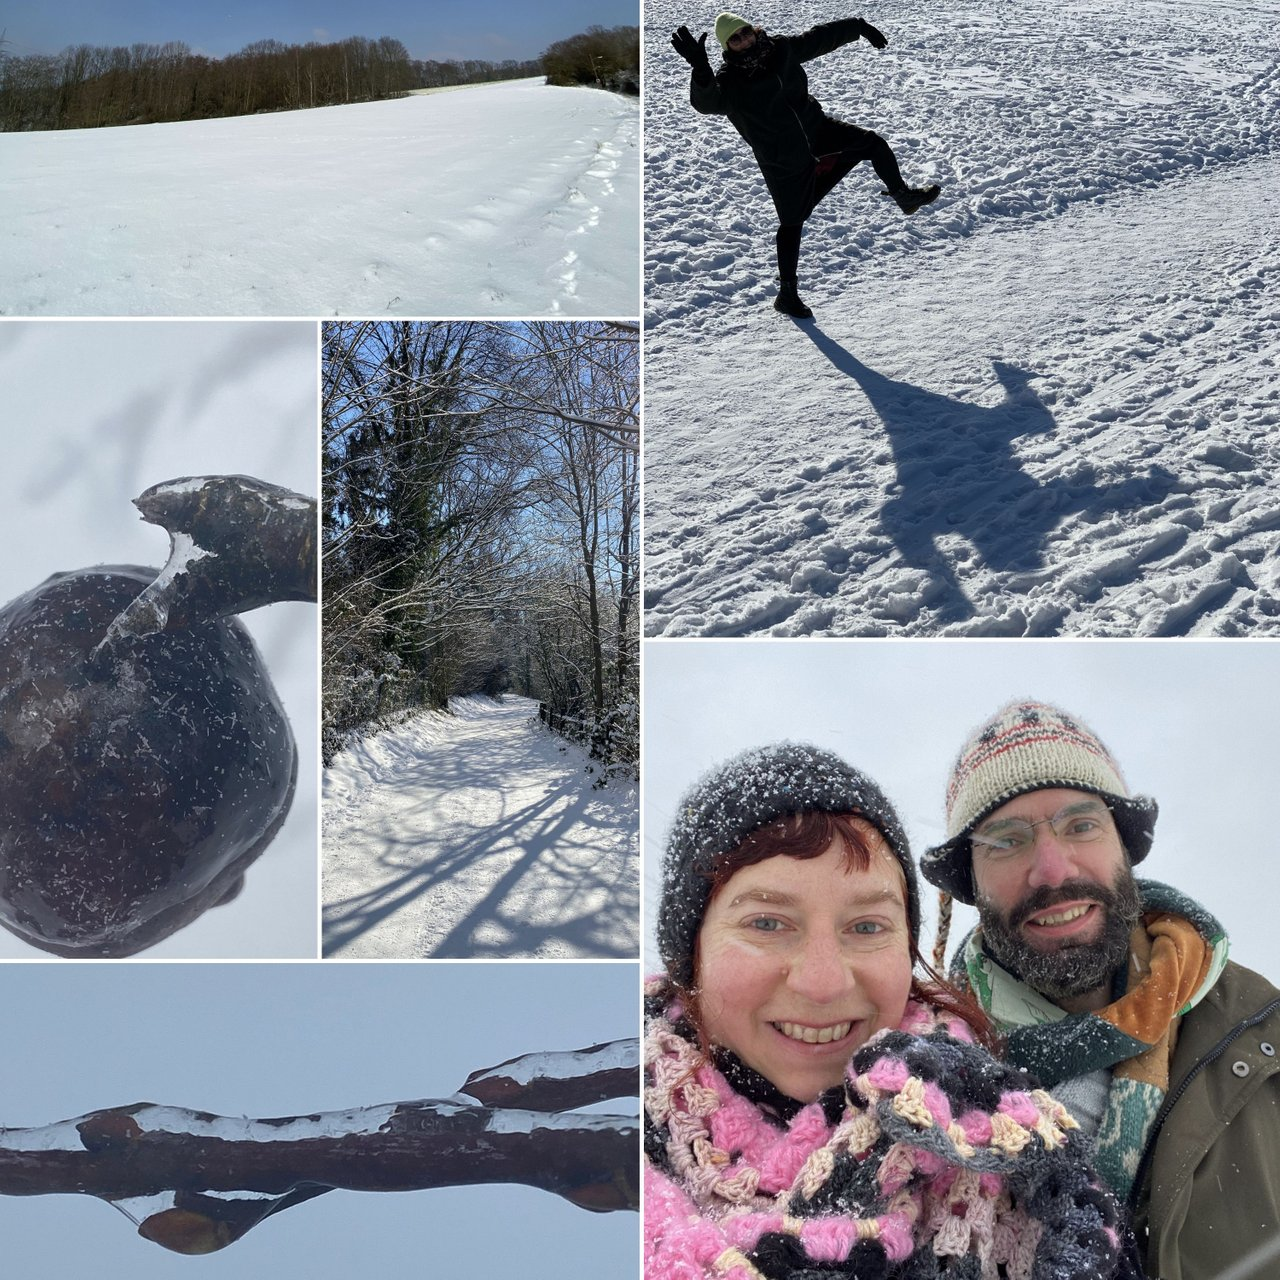 Fotos of a snowy landscape and Simone with her husband in deep snow